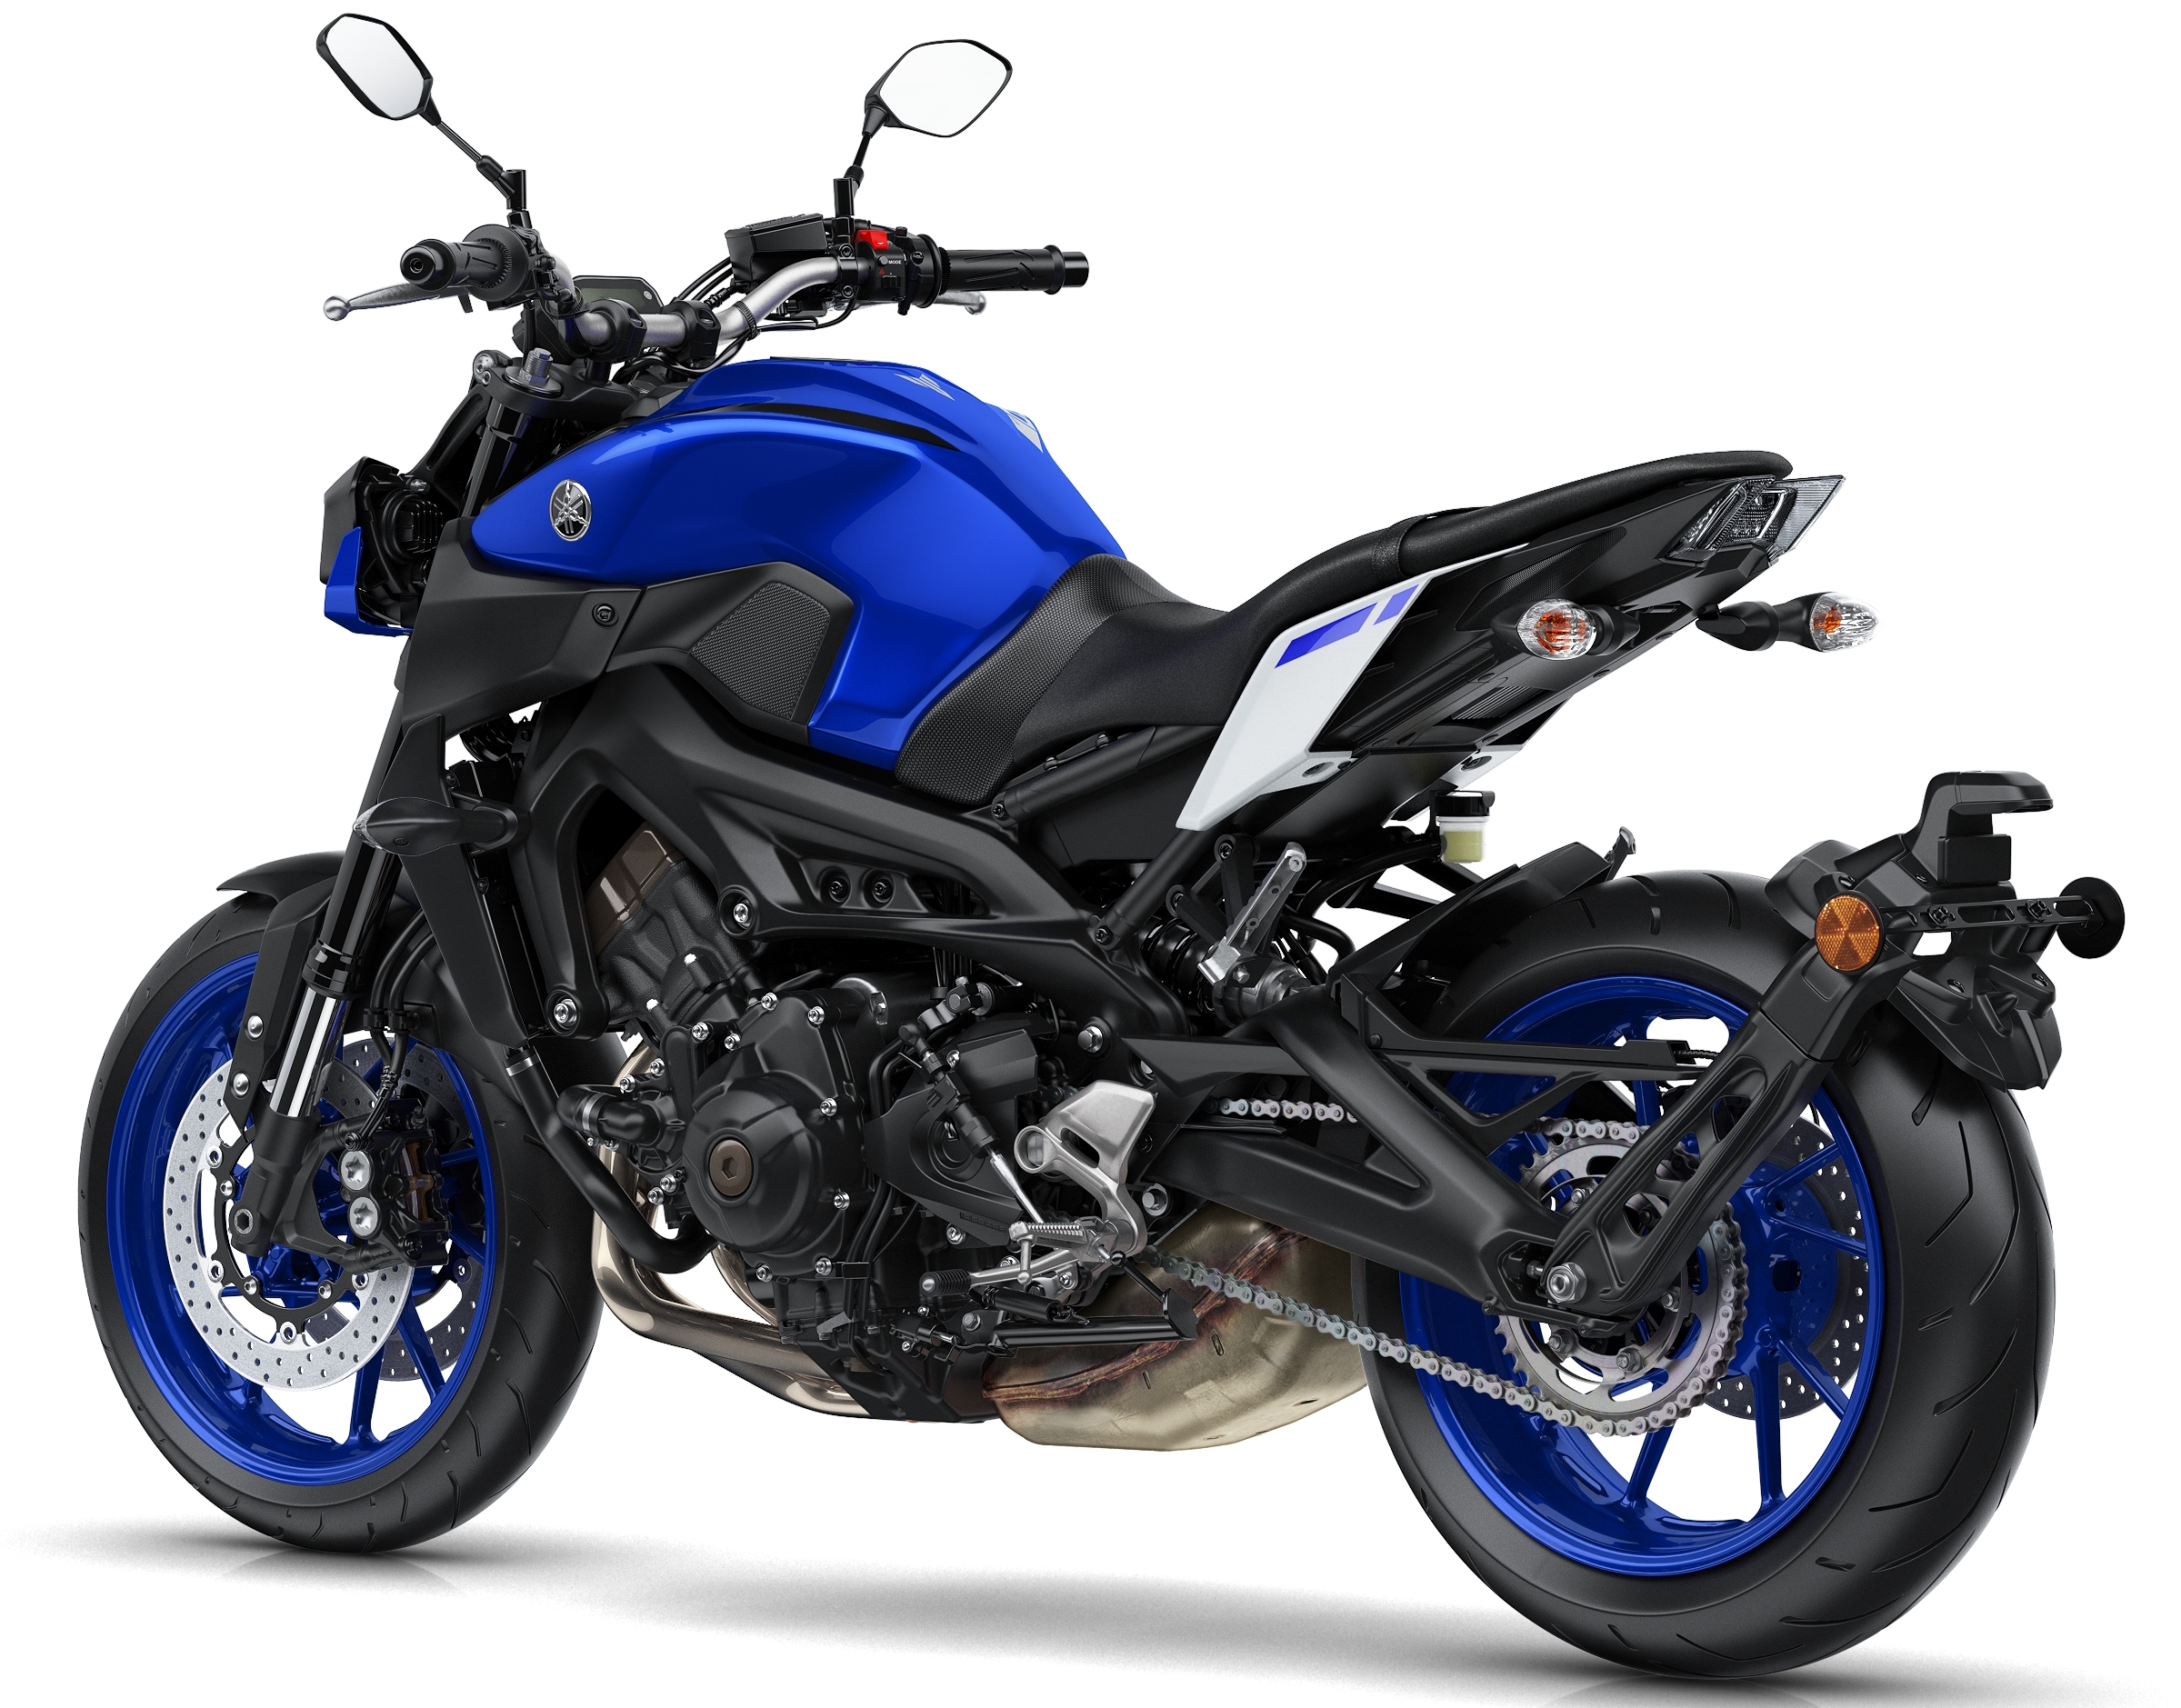 2017 yamaha mt 09 updated for the new year now with led lights quickshifter and upgraded. Black Bedroom Furniture Sets. Home Design Ideas